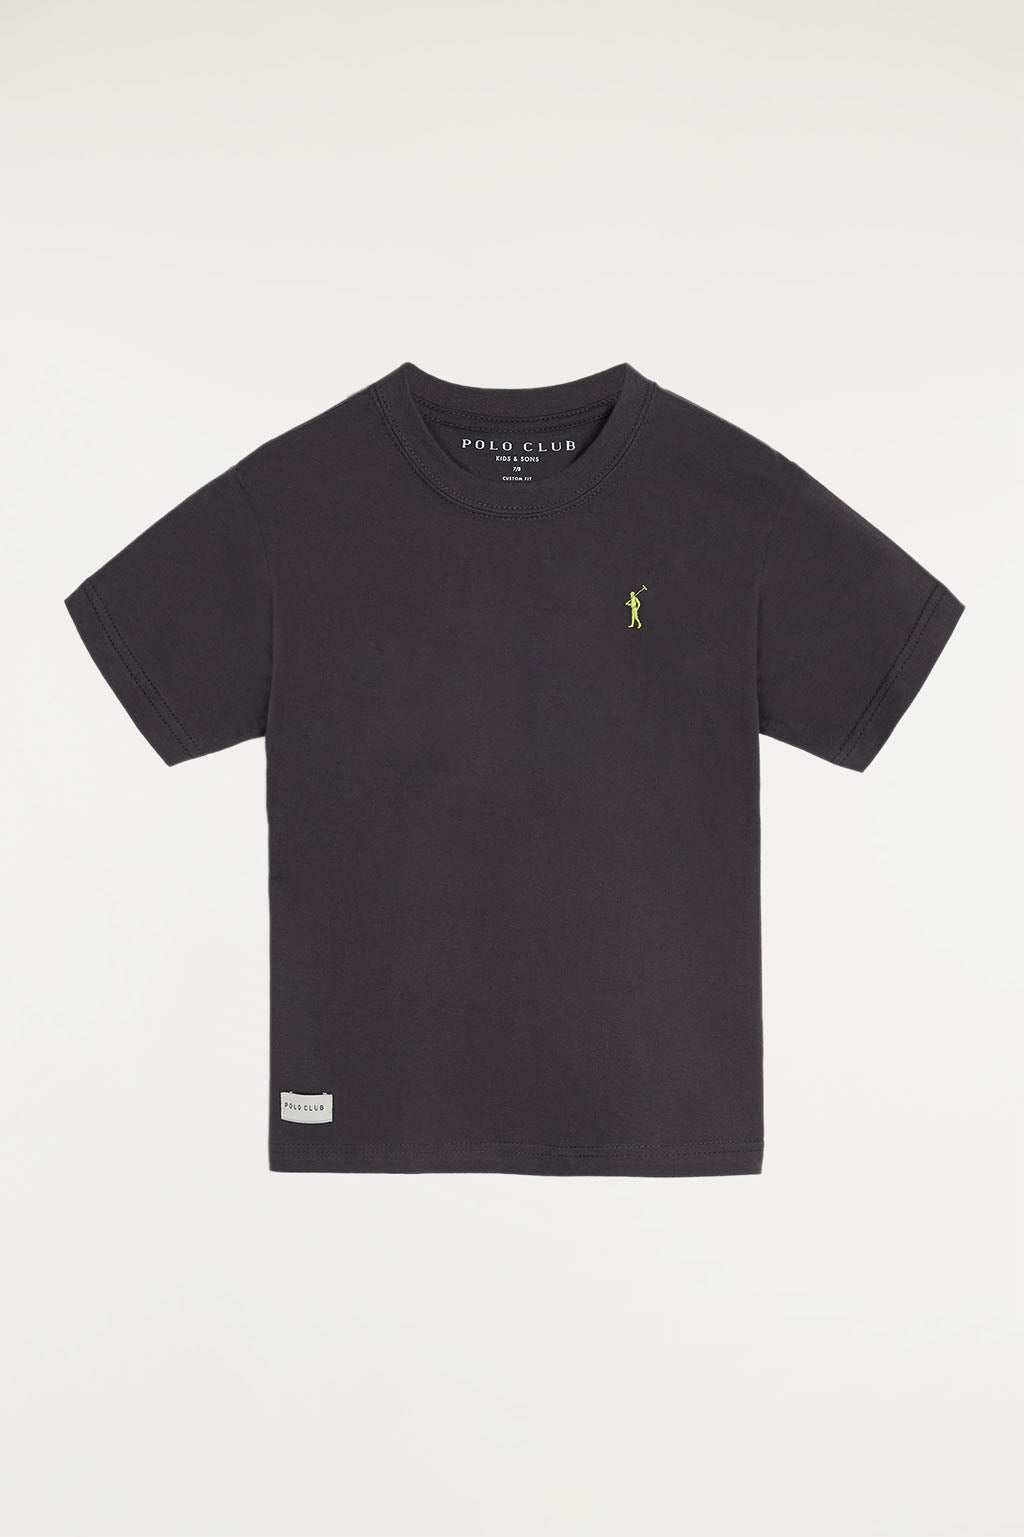 Grey tee with small embroidered logo